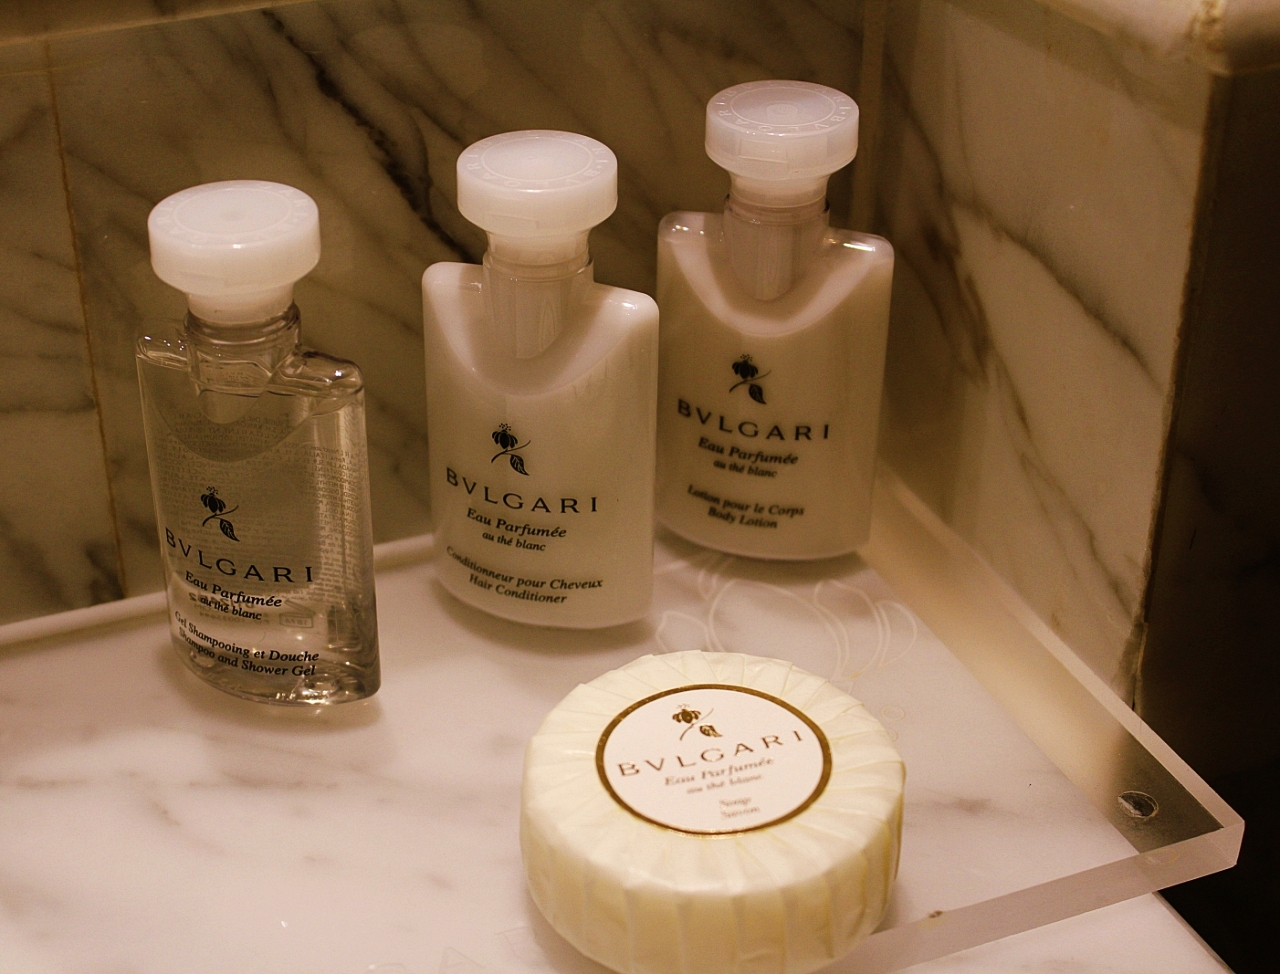 Kingsbury Hotel Bvlgari Toiletries